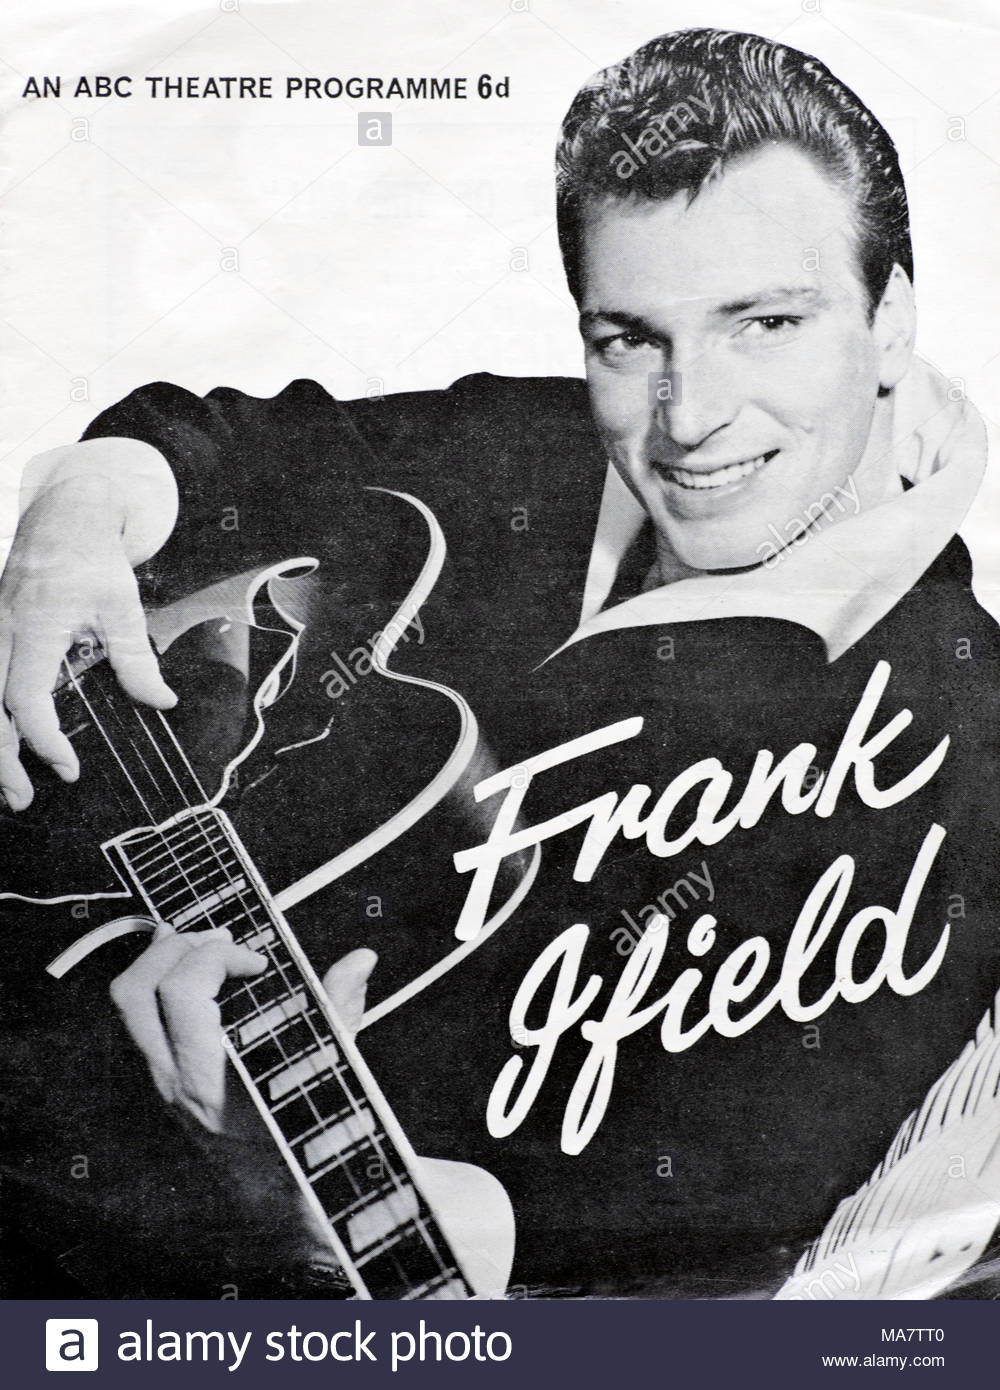 Frank Ifield show at the Globe Theatre, Stockton on Tees - 6th April 1964 tour programme - Stock Image